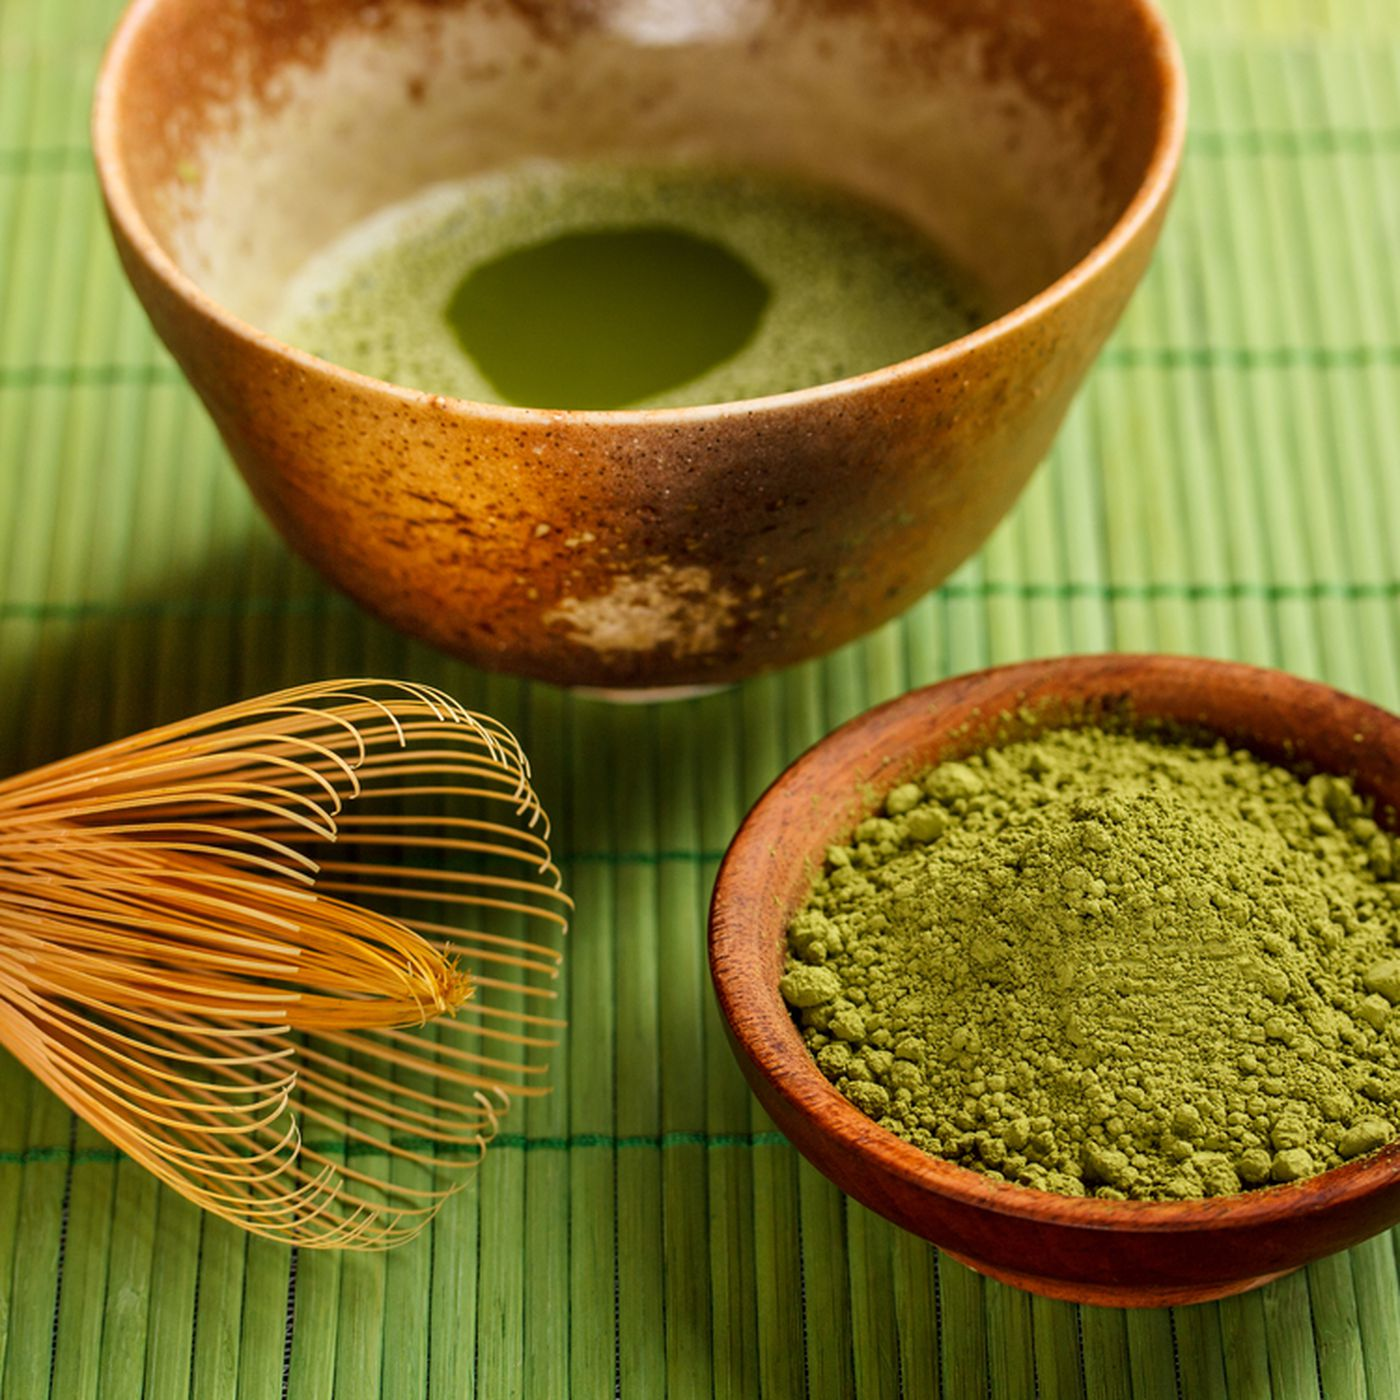 What Exactly Is Matcha and Why Is Everyone Talking About It